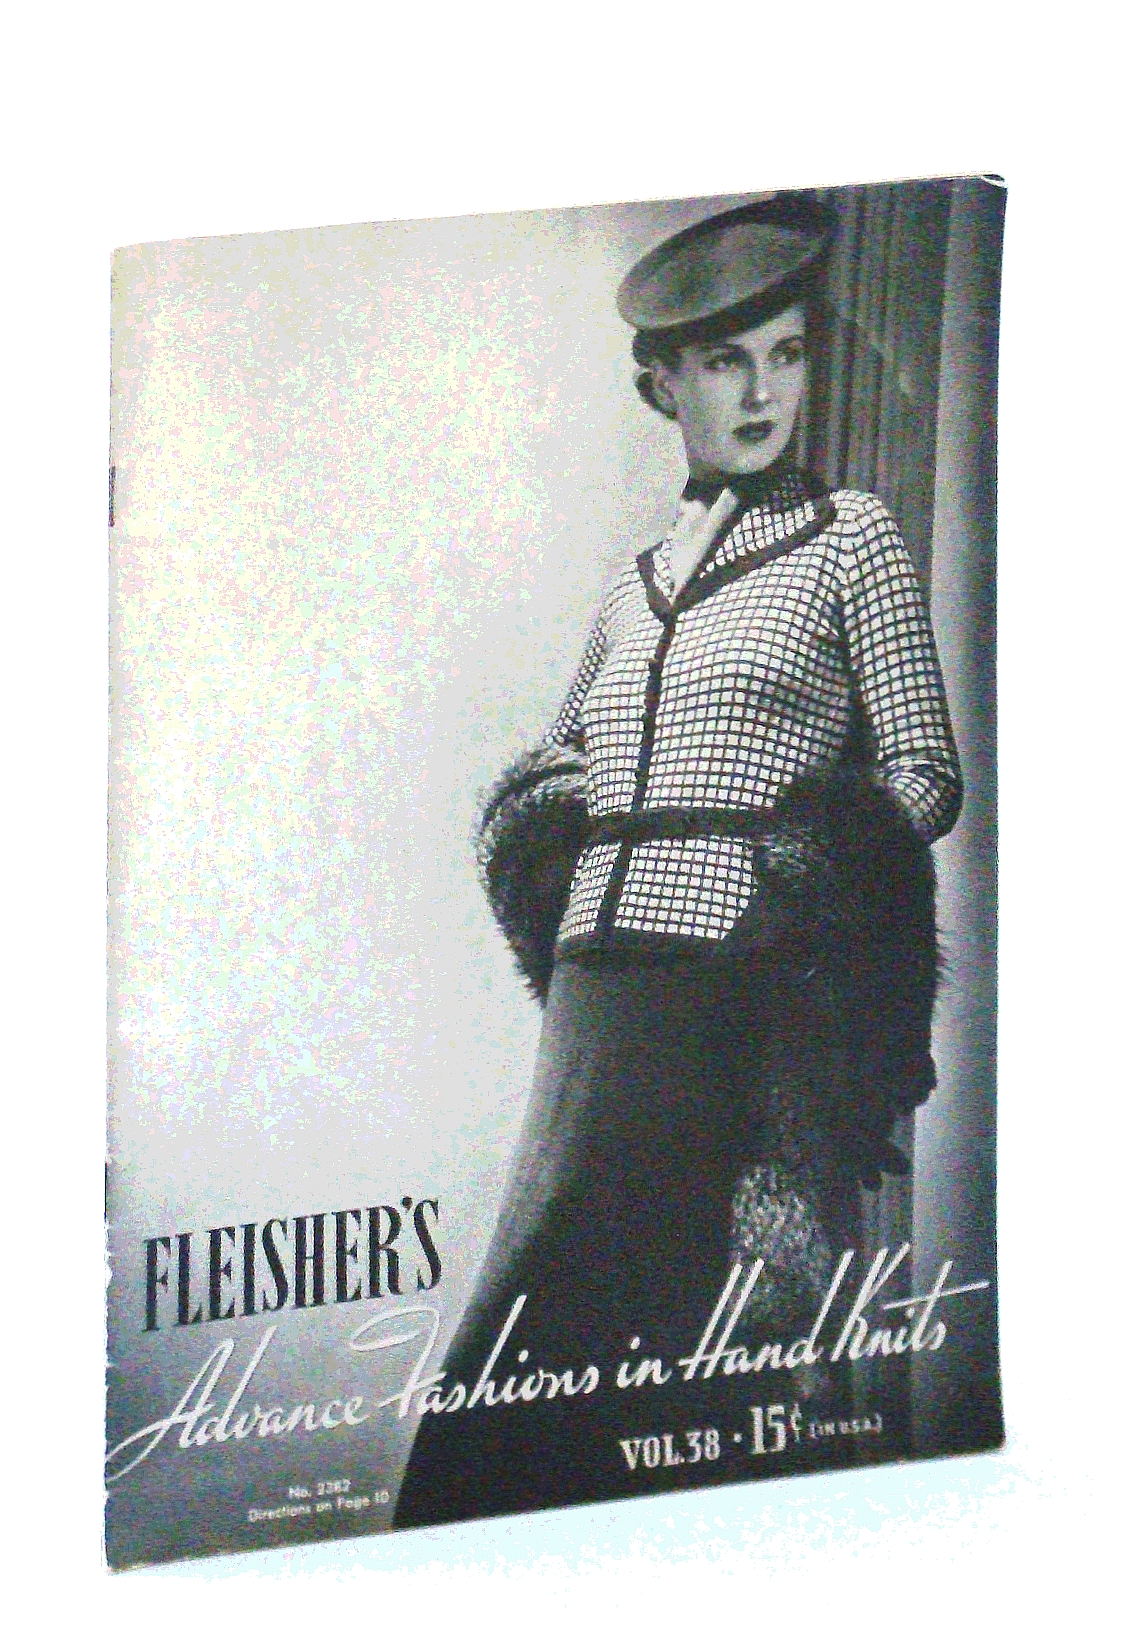 Image for Fleisher's Advance Fashions in Hand Knits, Vol. 38